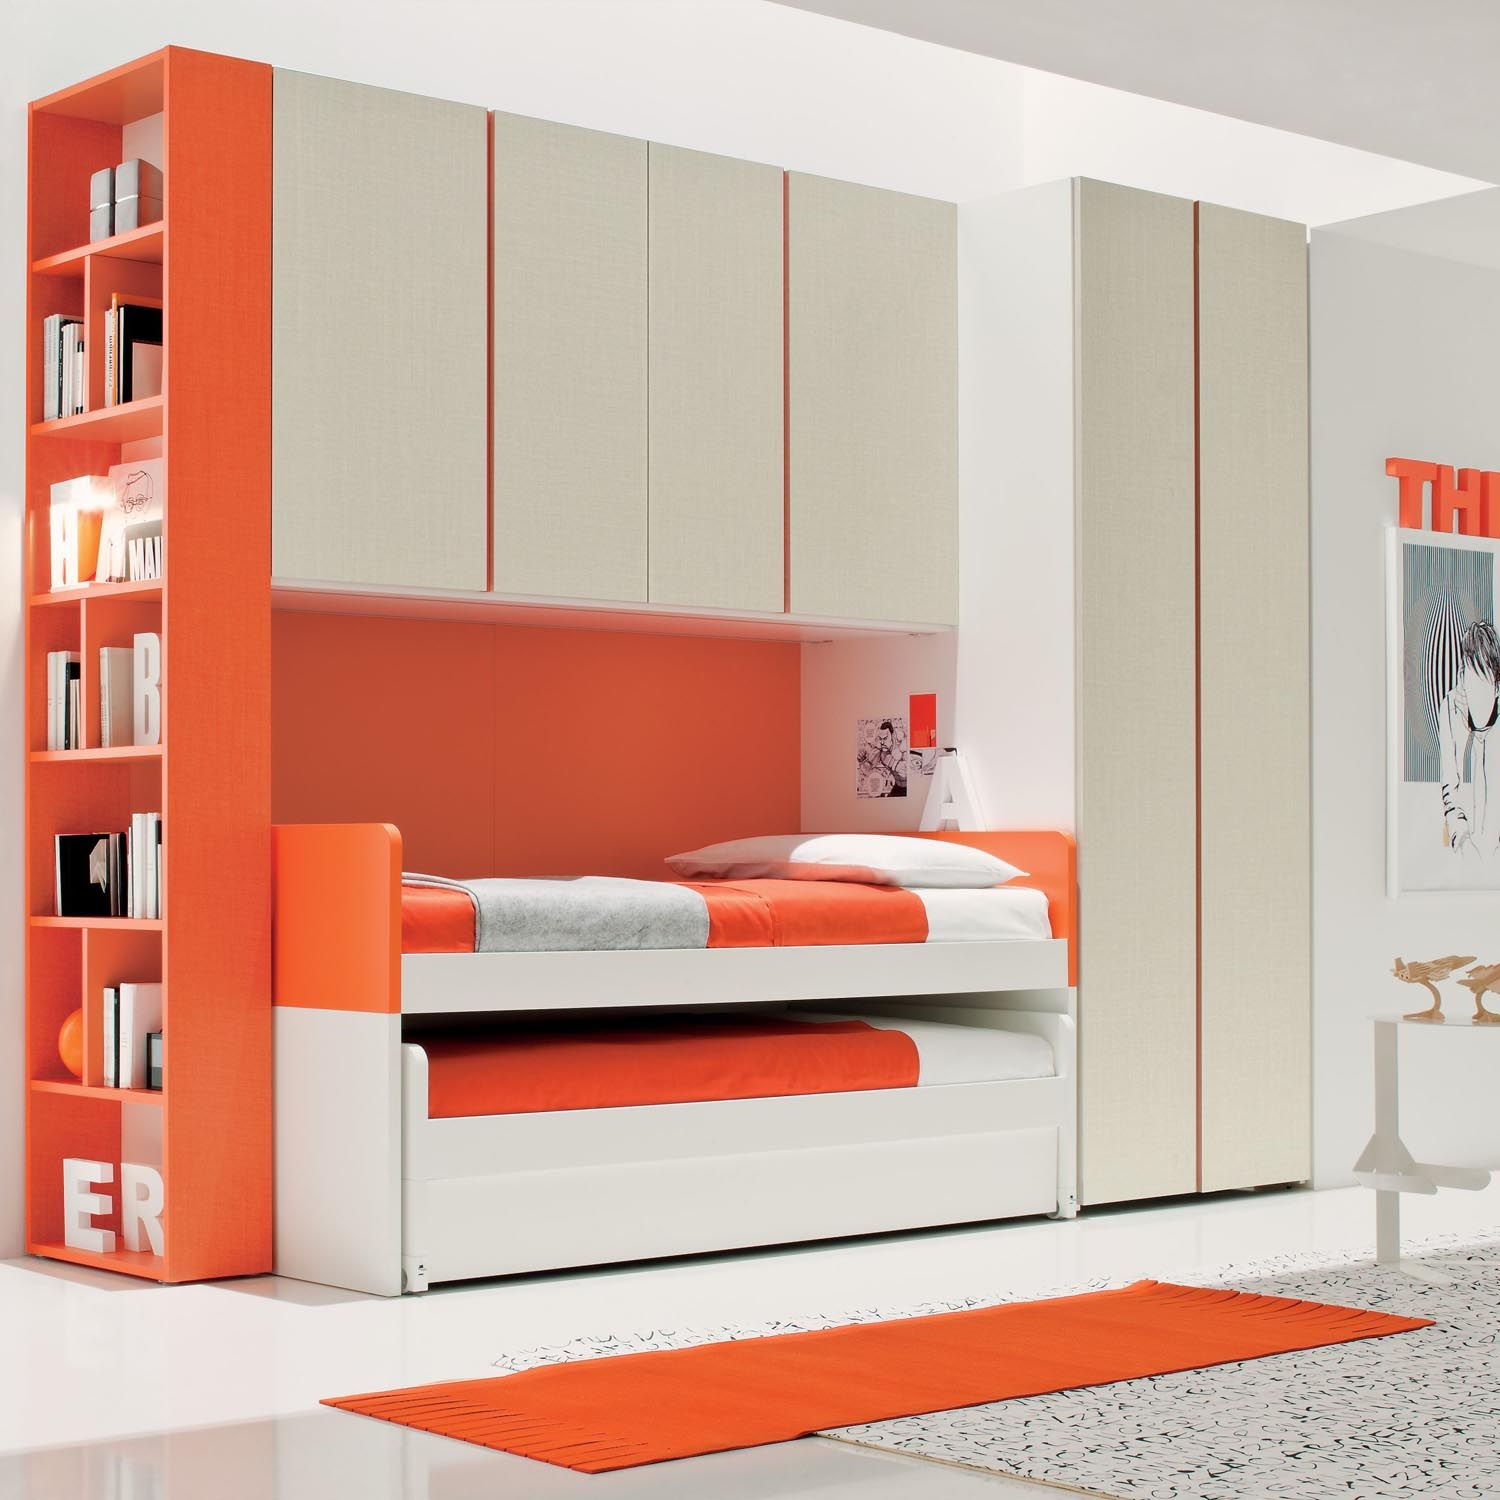 boy cool cupboard little of package bedroom choosing size orange children county furniture kids full childrens unique s toddler your great sets